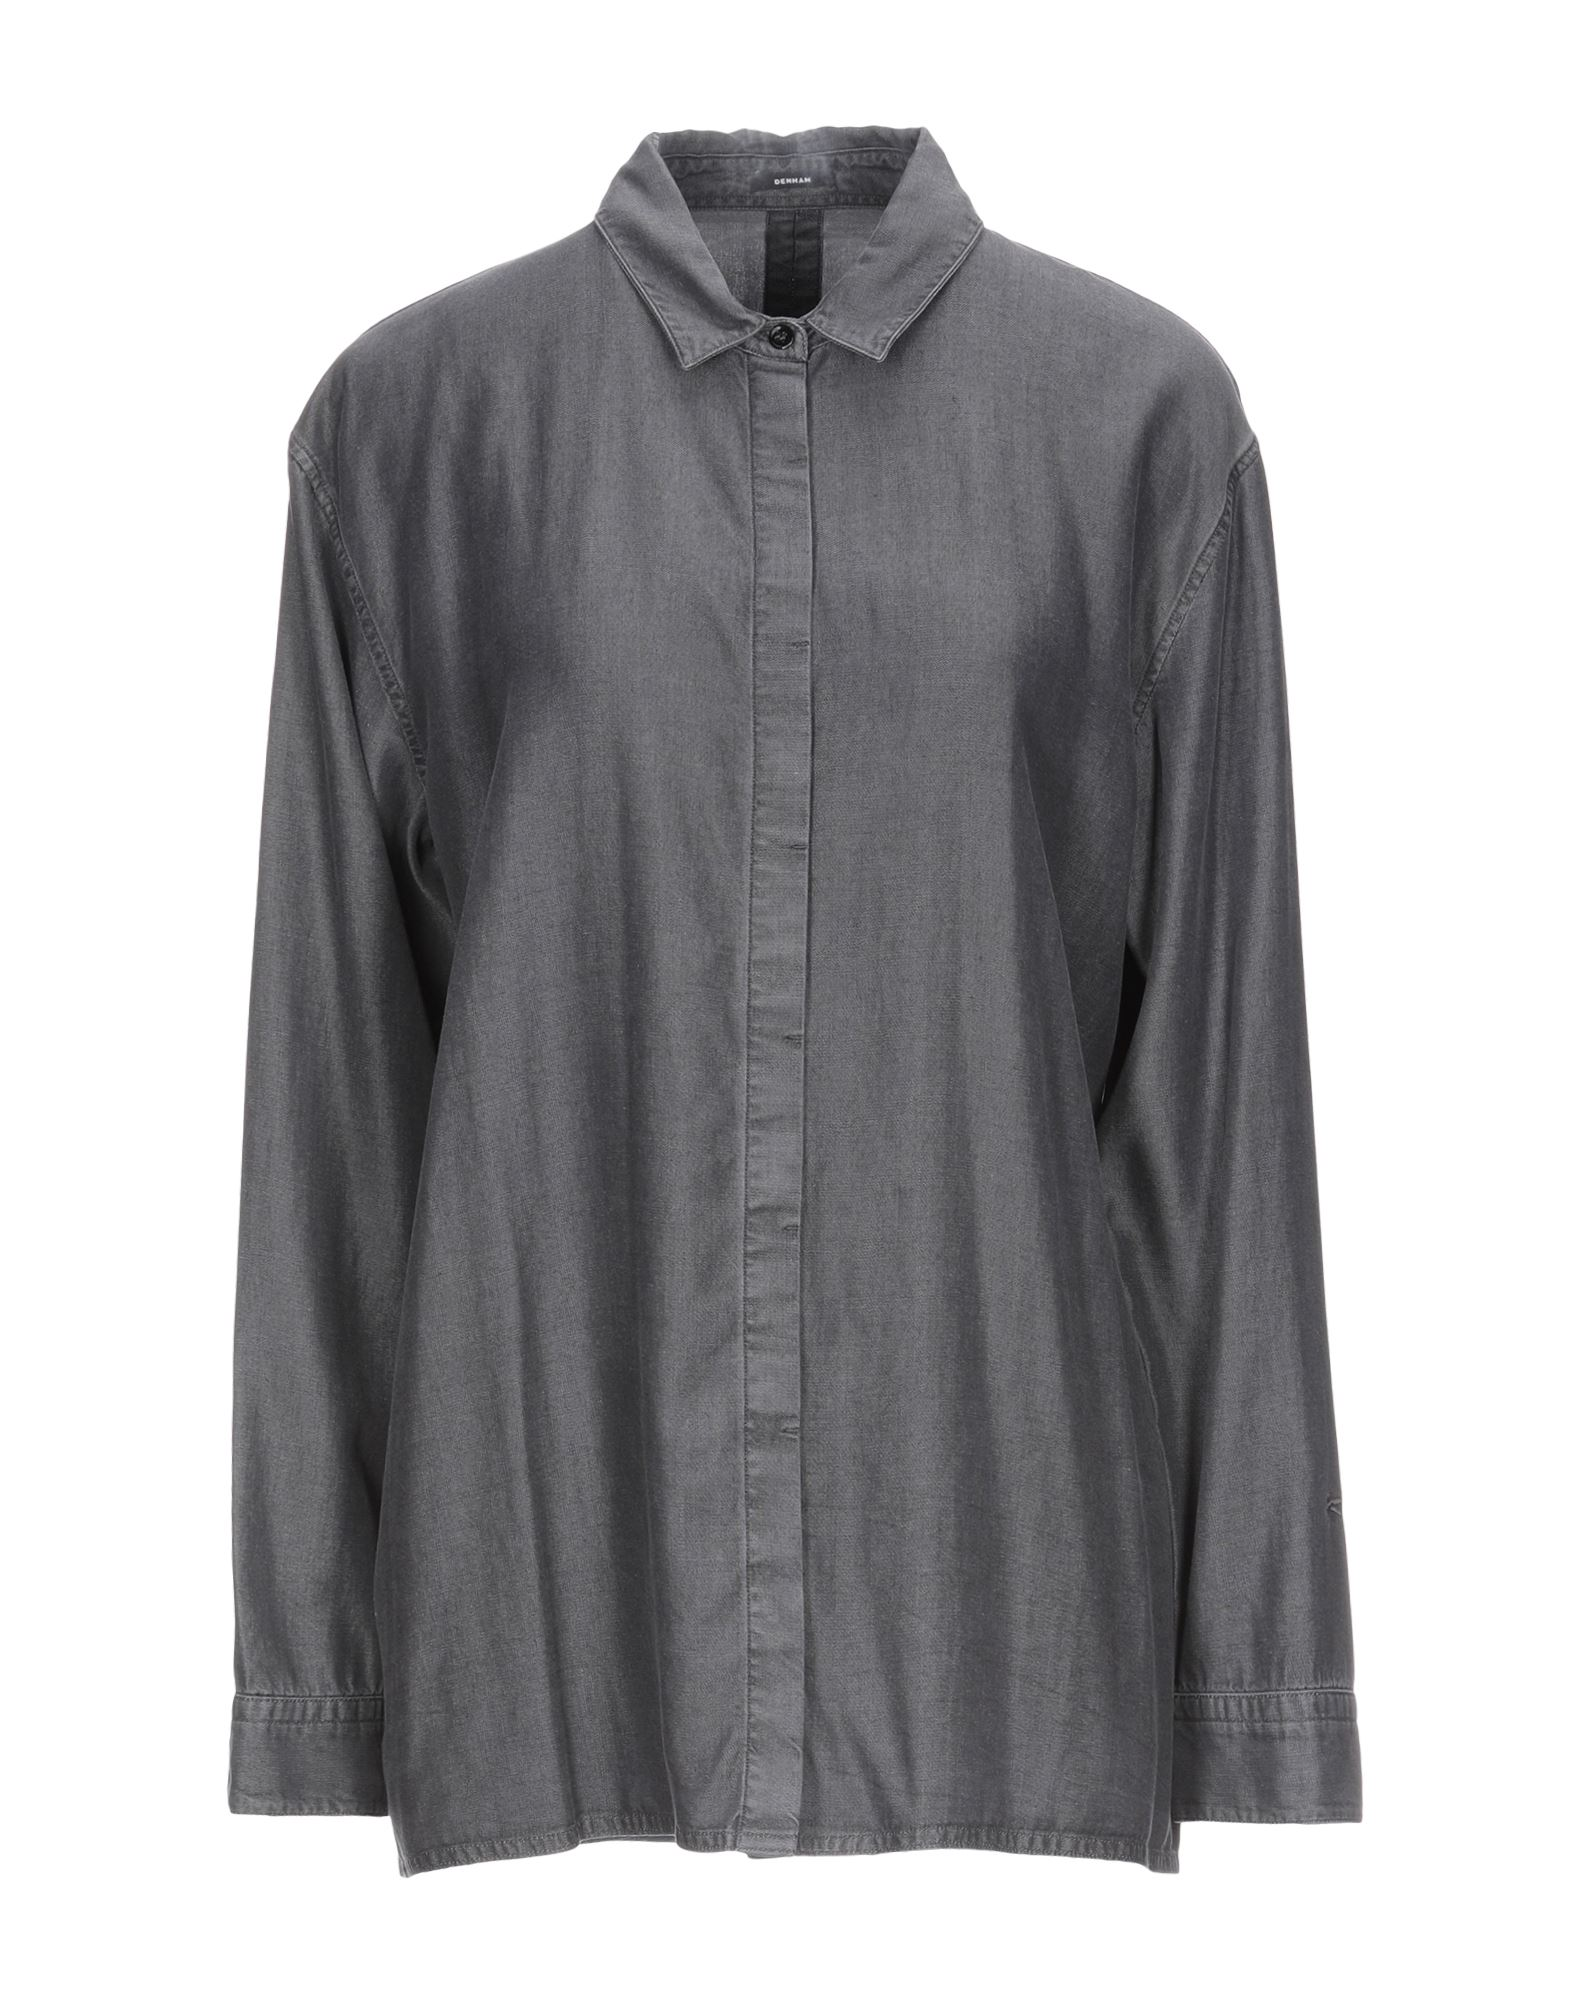 DENHAM Solid Color Shirt in Grey